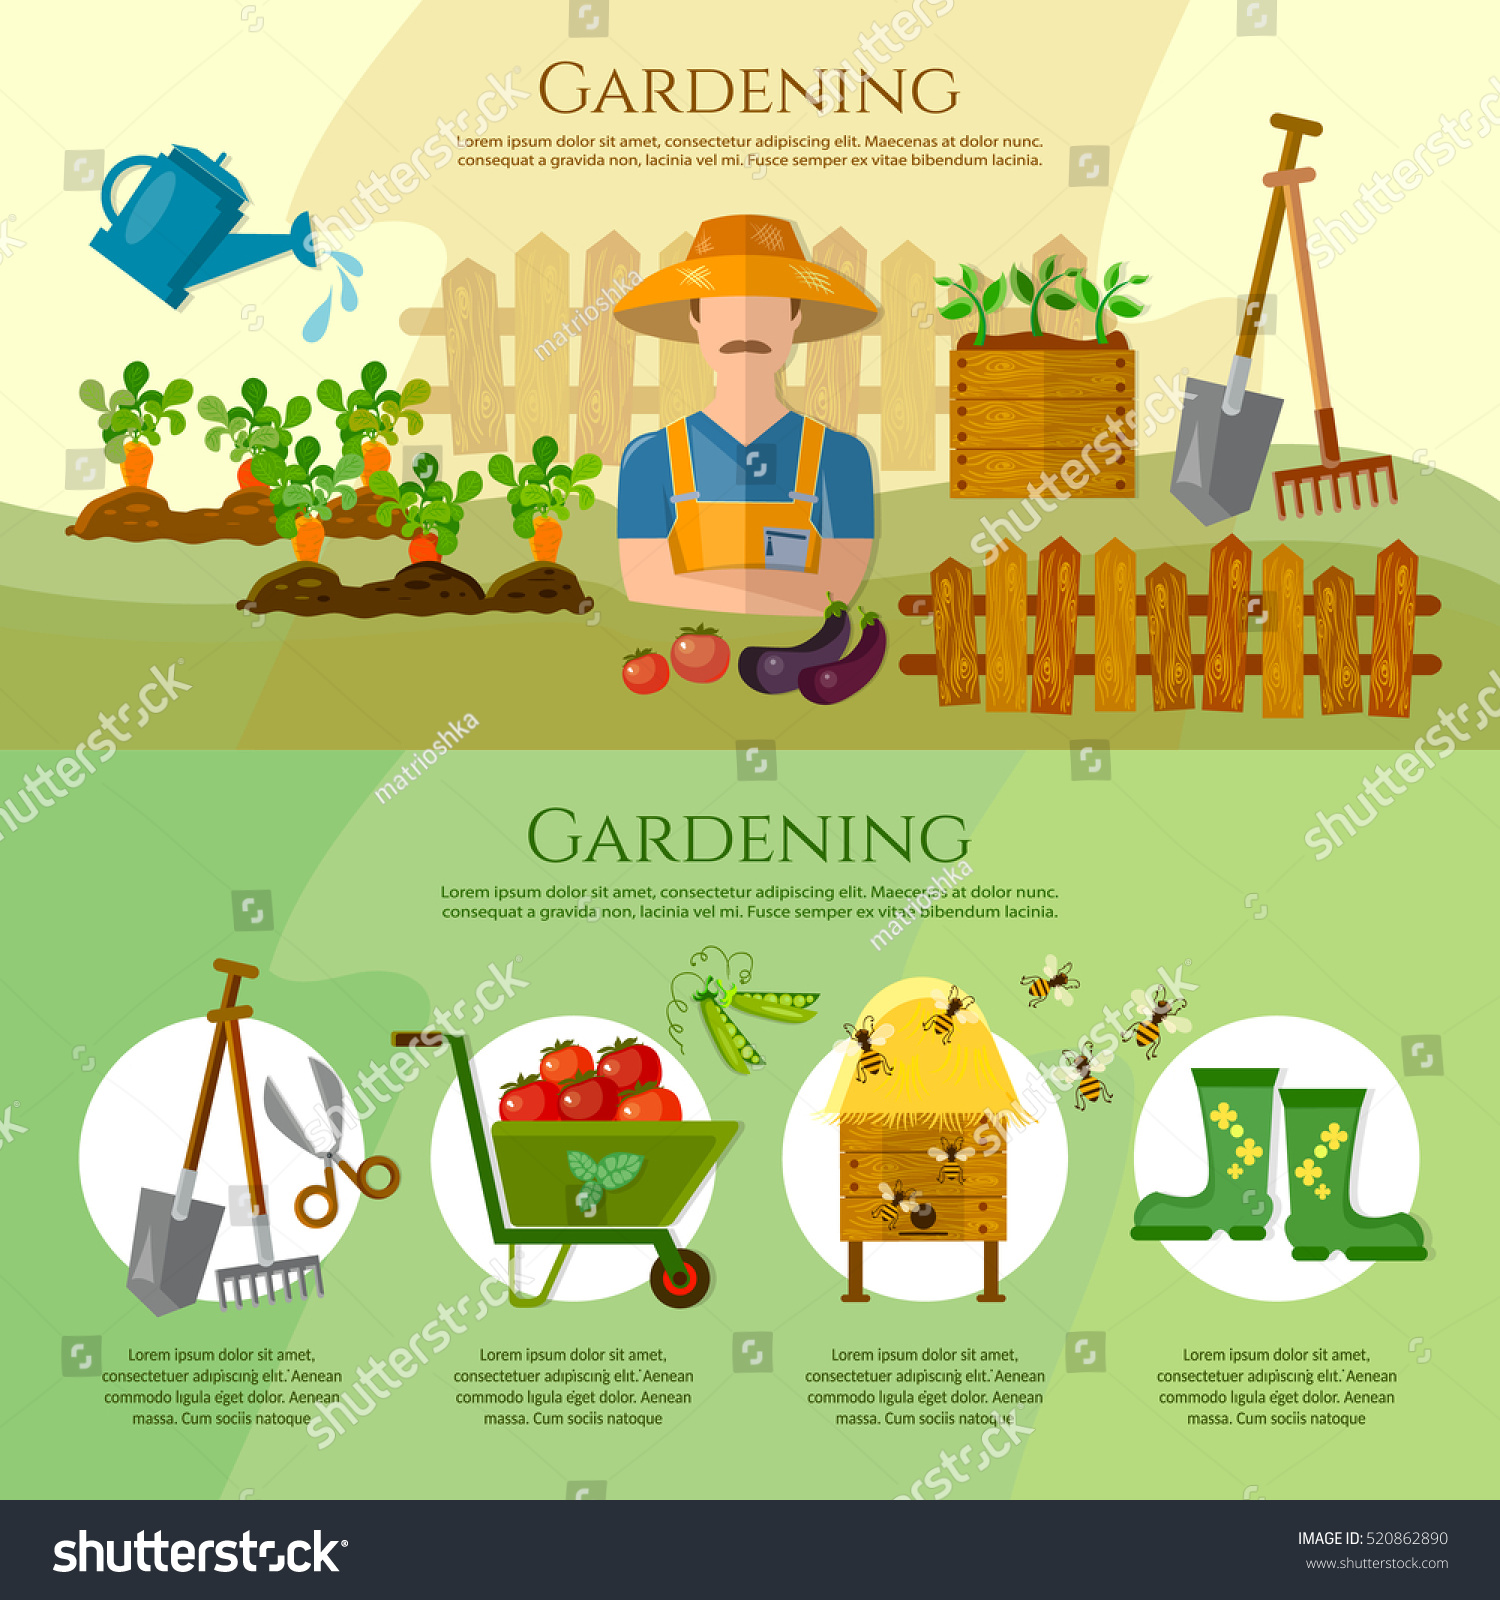 Gardening growing vegetables natural food farmer products cartoon Garden tools Banner with summer garden landscape Flat style vector illustration